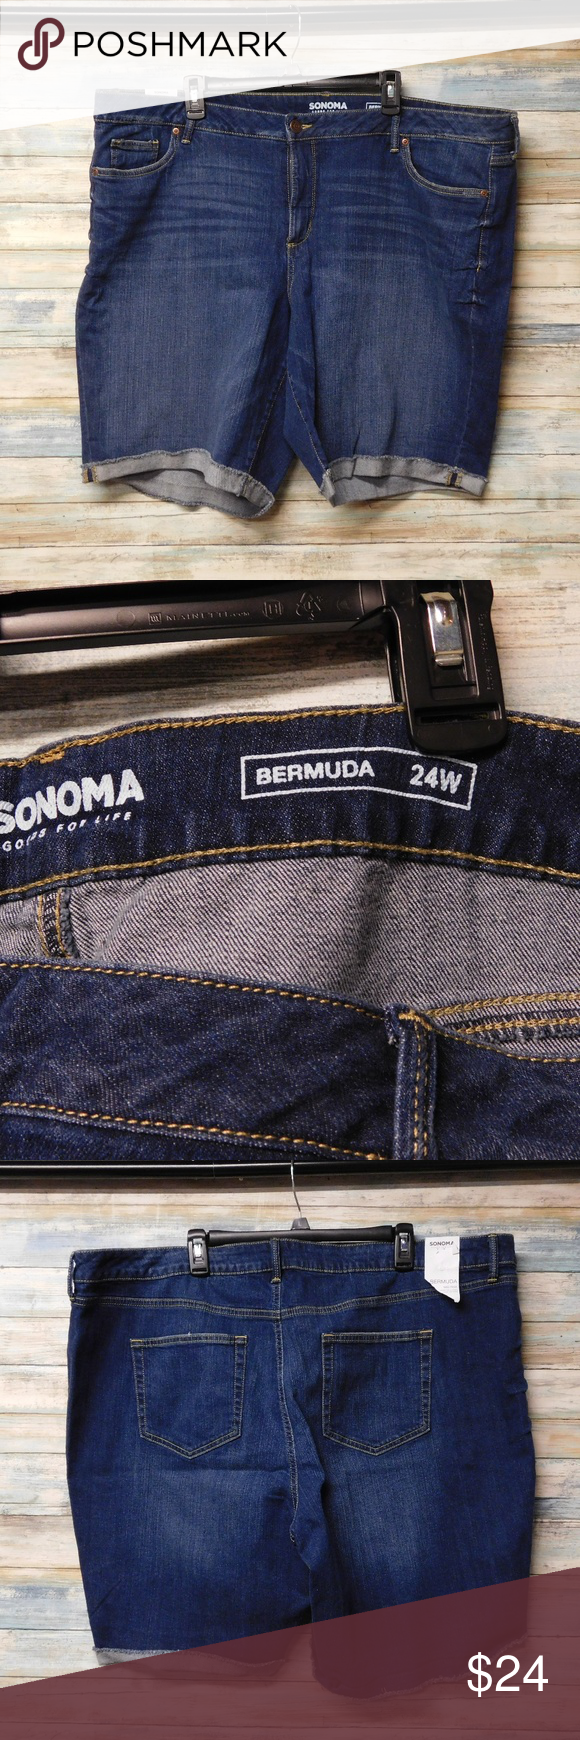 "Women's Sonoma Bermuda Shorts Stretch Jeans 24W Women's Sonoma Bermuda Shorts Stretch Jeans 24W  dark blue Measures approximately: waist one way laying flat: 24""   total 48"" inseam: 13""  22"" long from waist to hem rise: 13"" leg opening: 13.5."" new with tags 99% cotton 1% spandex Sonoma Shorts Bermudas"